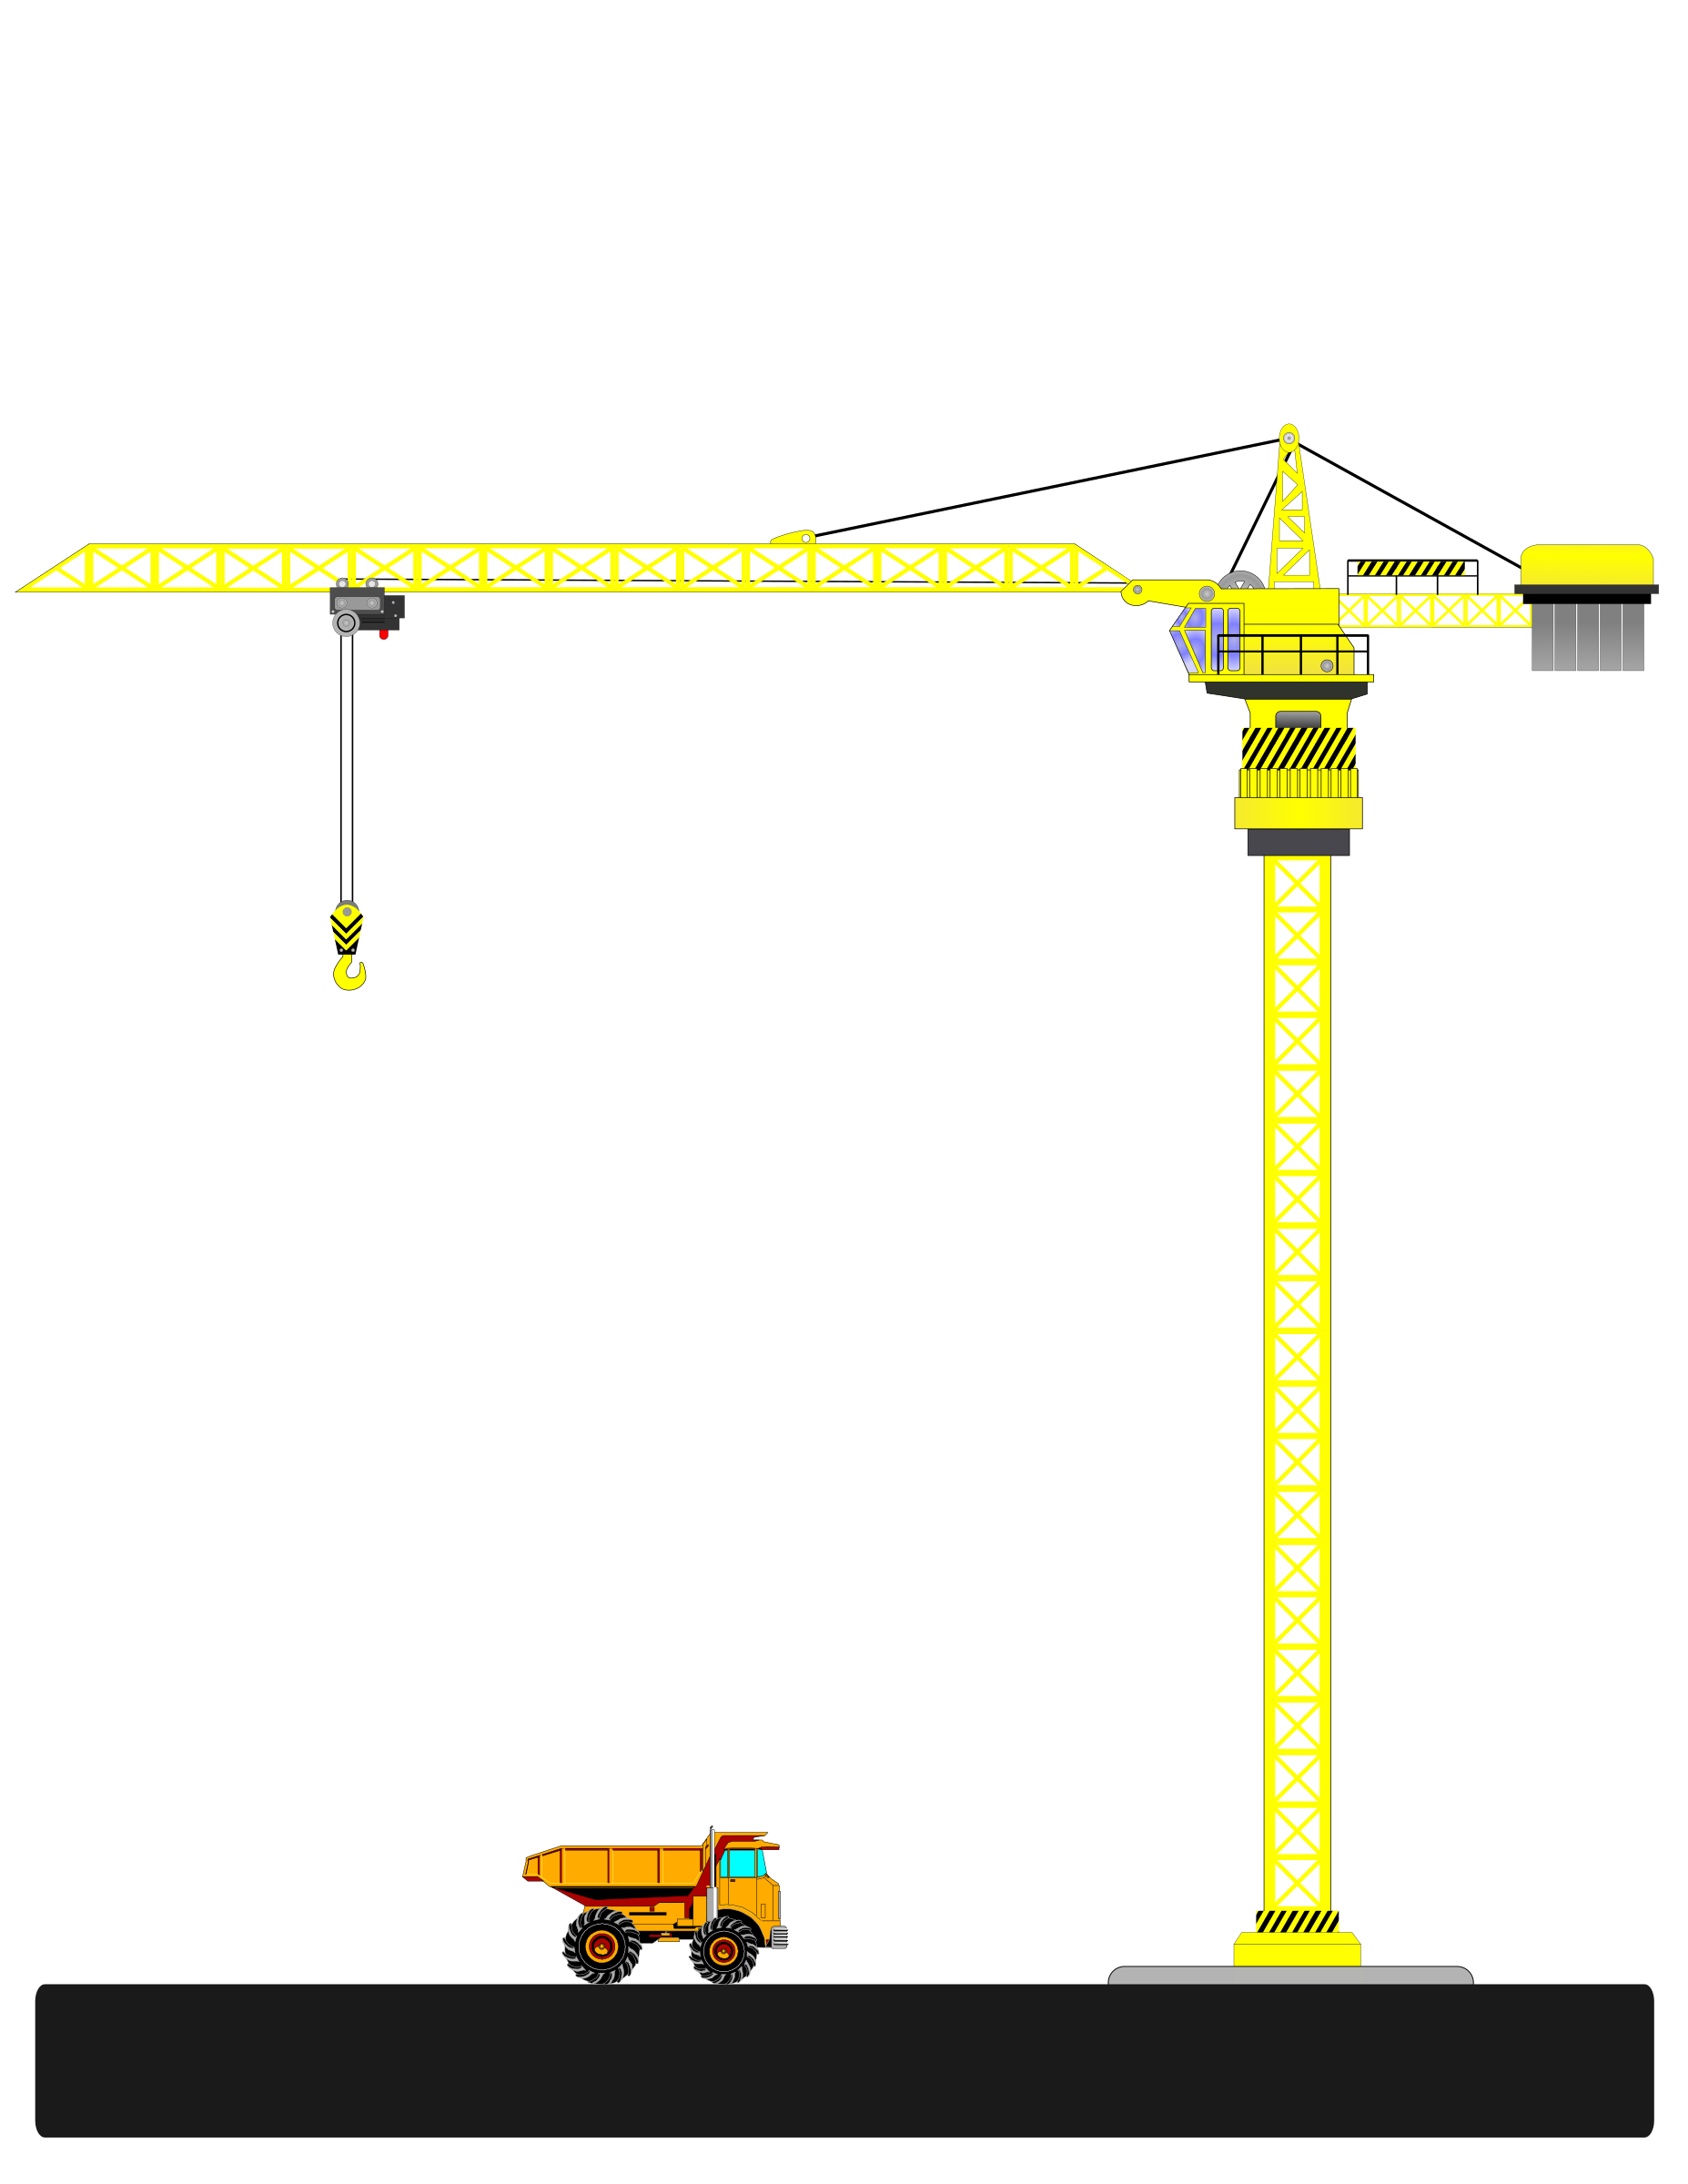 Big image png. Crane clipart small tower